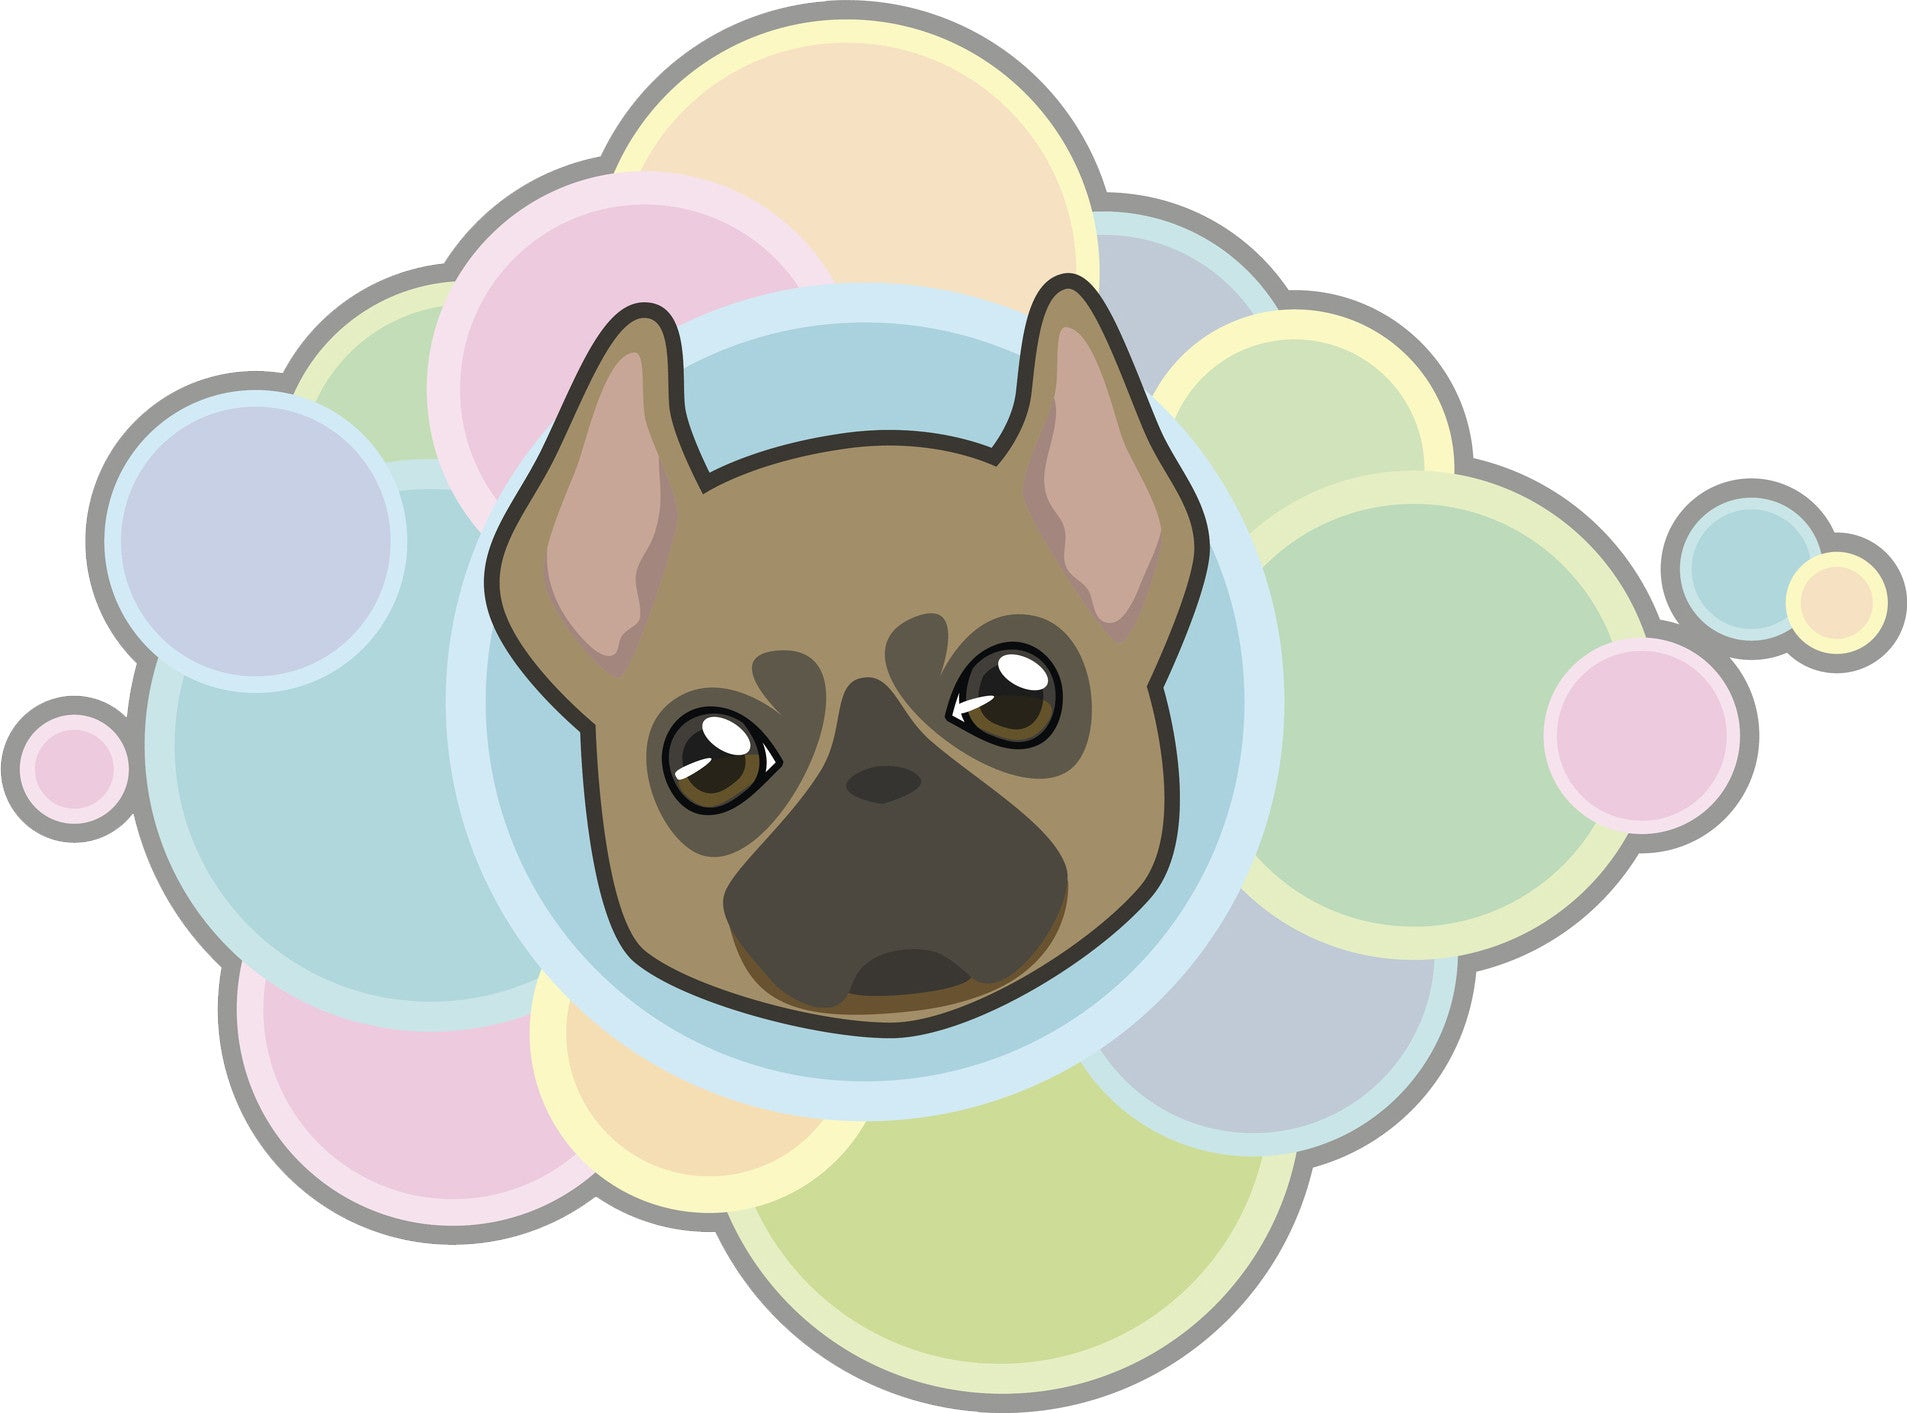 Cute Adorable Kawaii Puppy Dog Cartoon with Rainbow Bubbles - Bully Vinyl Decal Sticker